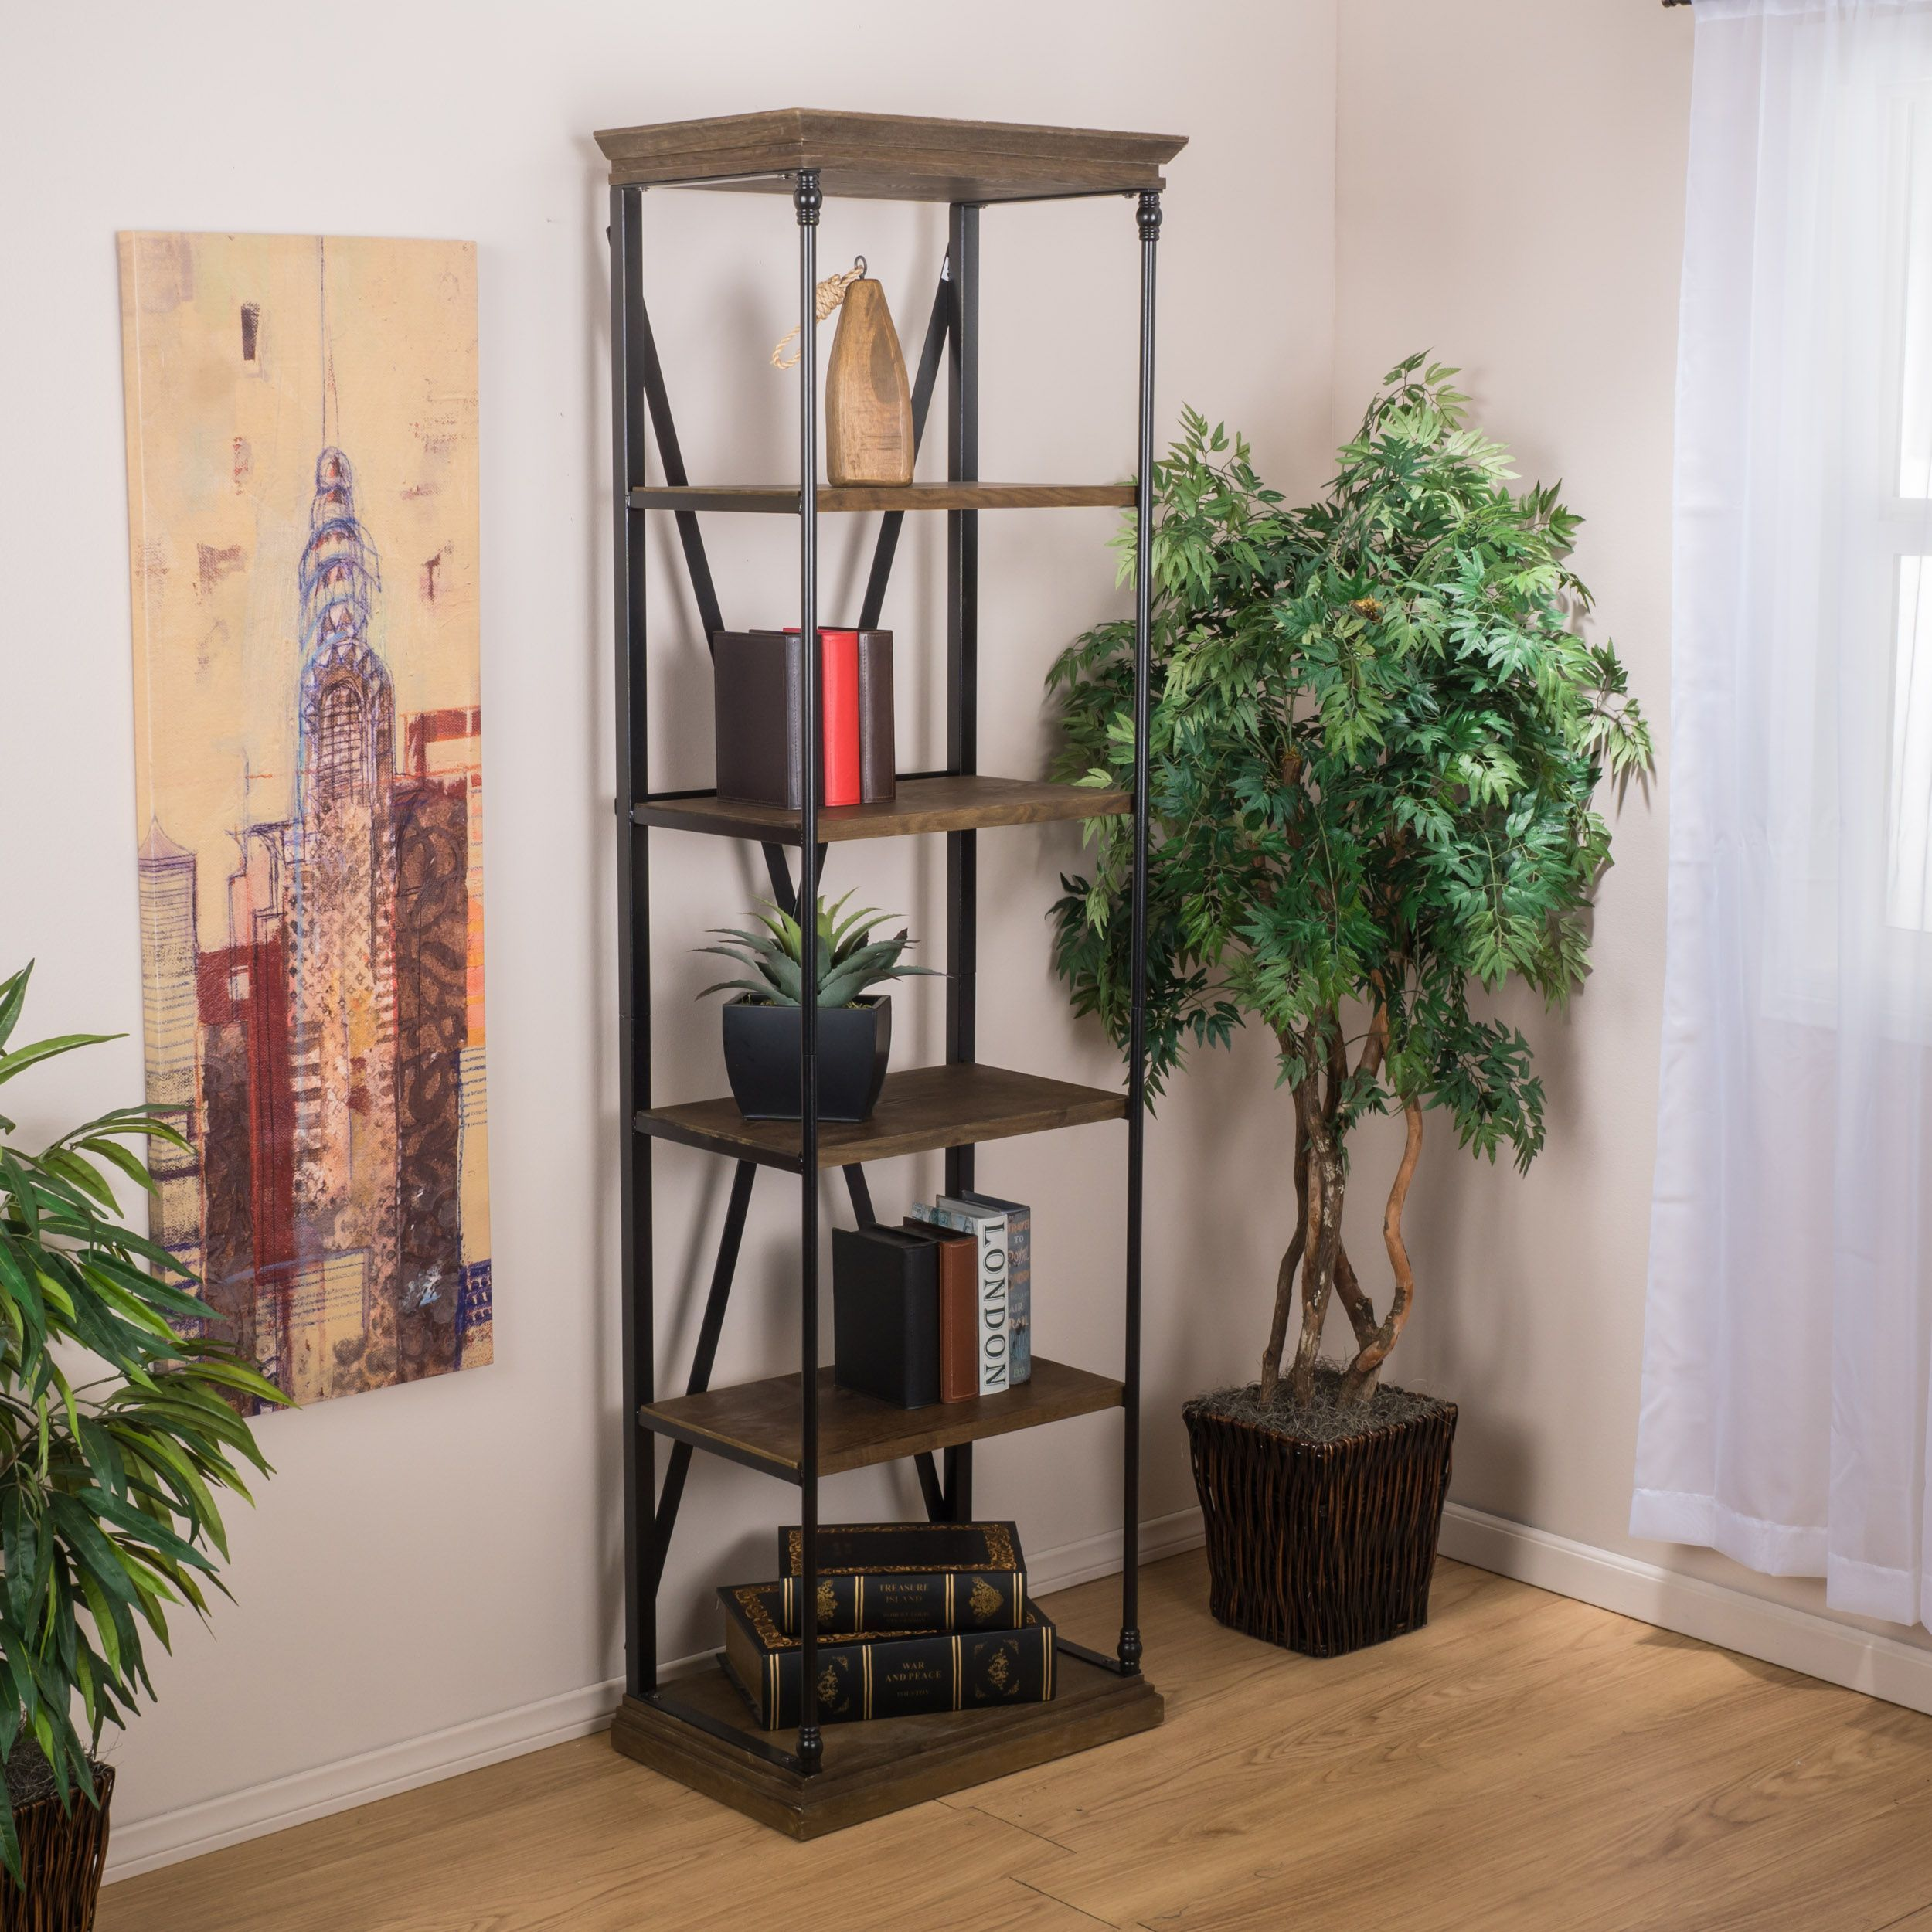 The Appleton Bookcase Is Built In The Classic Industrial Furniture Look.  Built From Wood And